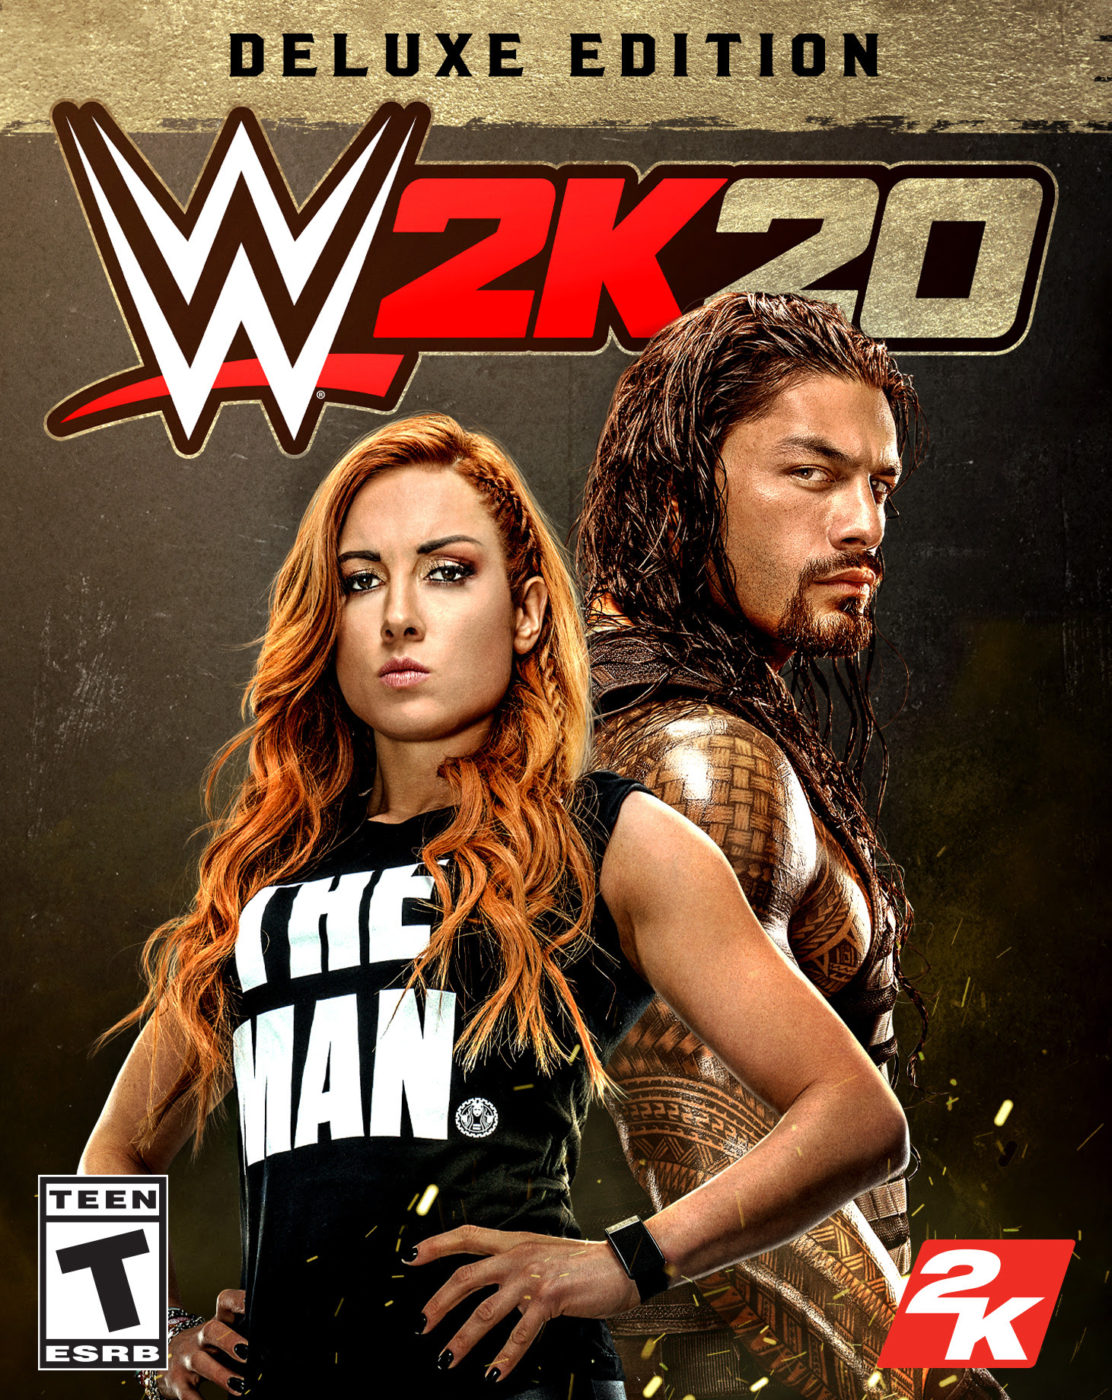 wwe 2k20 cover stars, WWE 2K20 Cover Stars Announced, Deluxe & Collector's Edition Contents Revealed, MP1st, MP1st